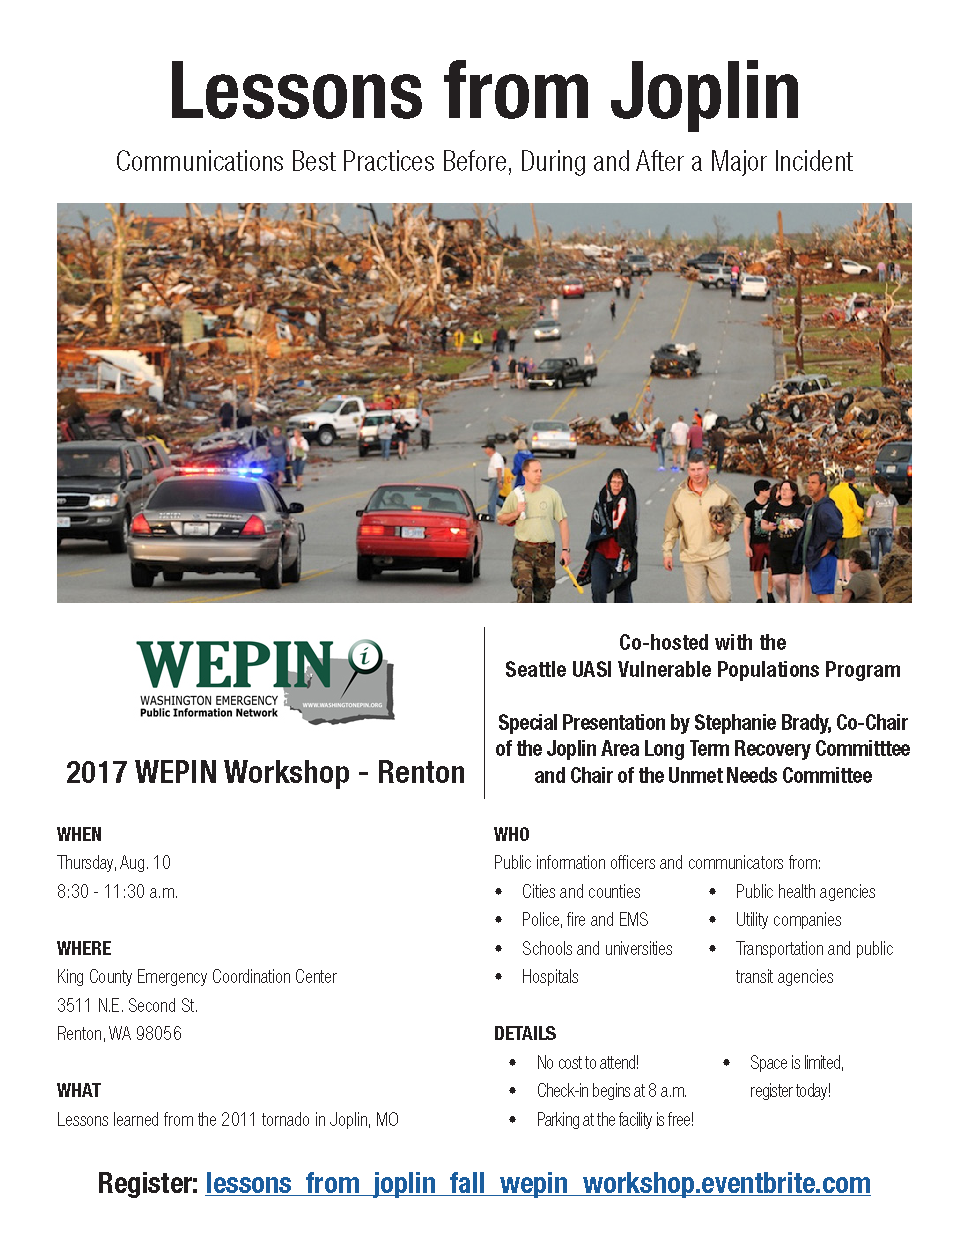 Image of the event flyer to include image of damaged neighborhood from Joplin MO